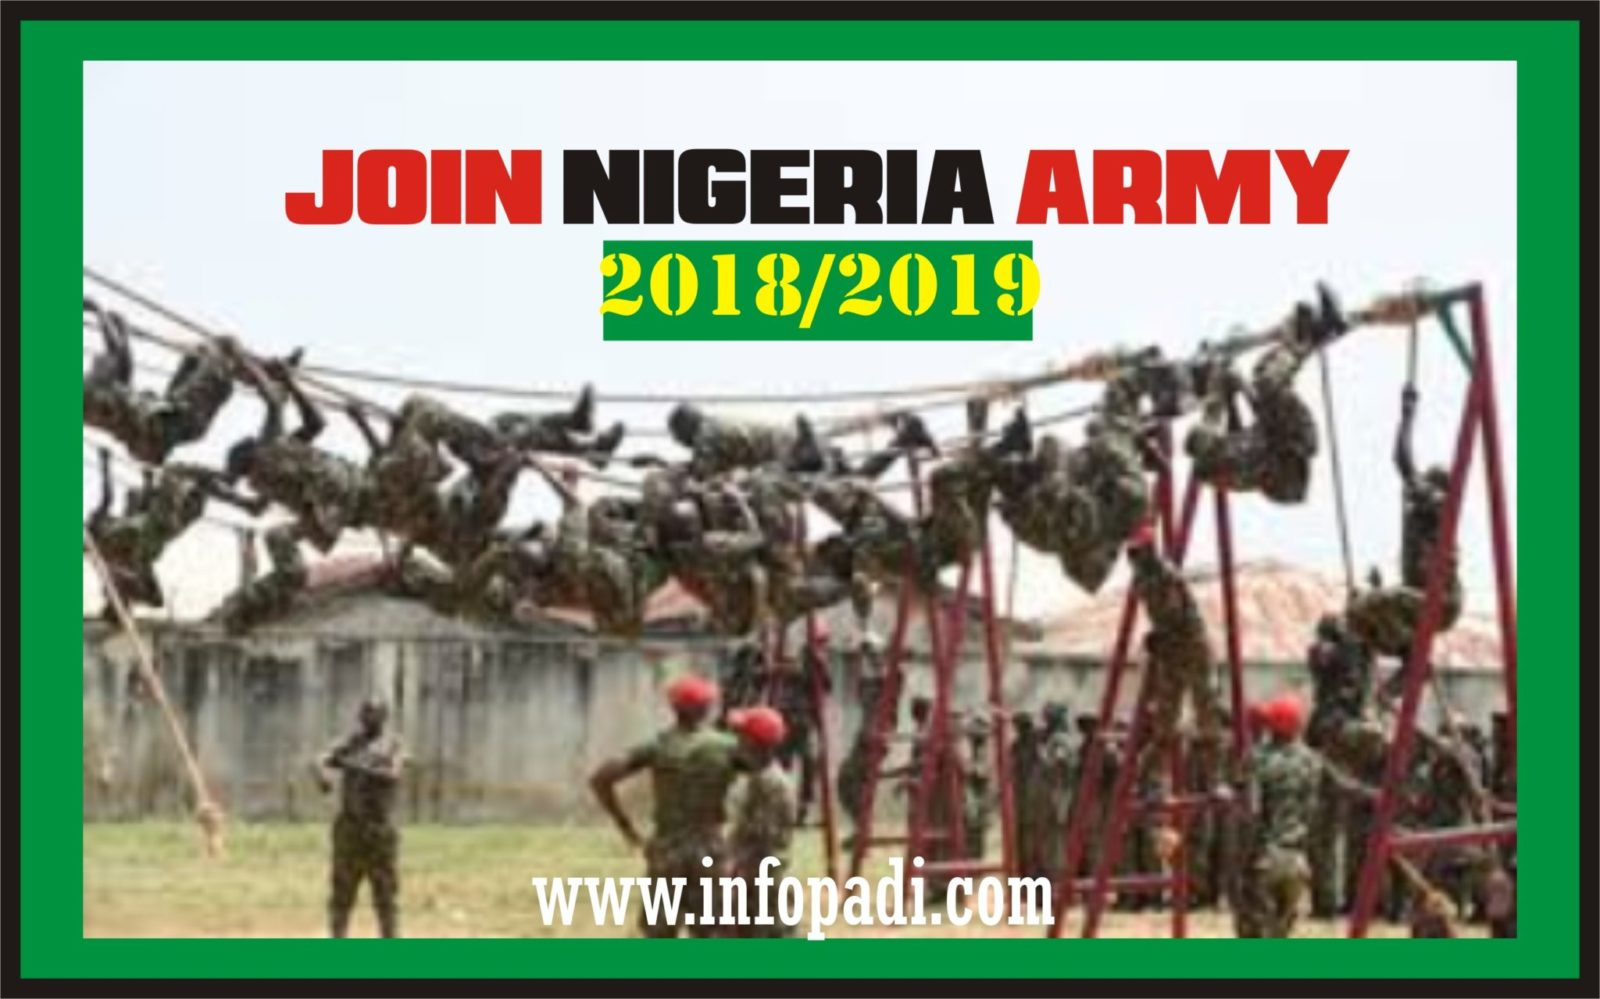 Join Nigerian Army- Apply for the 2018 Nigerian Army Recruitment- Full details to properly apply and get selected